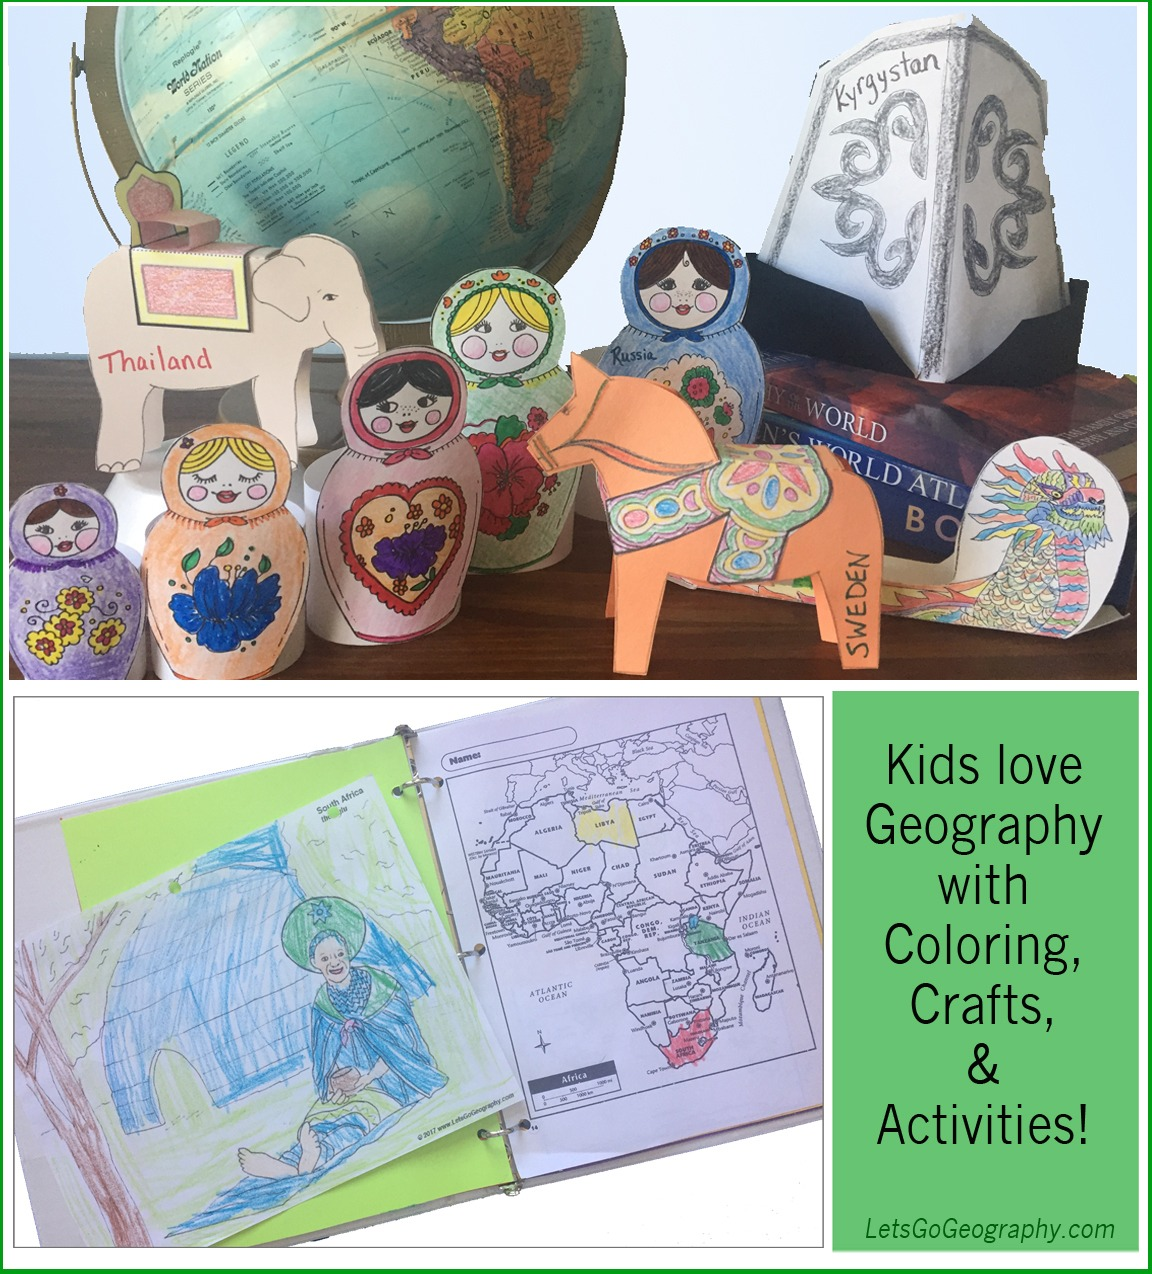 Get the best homeschool Geography Curriculum for K-5th grades! Kids learn a new country every week with coloring, crafts, & activities. No more boring worksheets! Share with friends! #homeschoolgeographyelementary #homeschoolgeographycurriculum #homeschoolgeographylessonplans #homeschoolgeographychildren #homeschoolgeography #makinggeographyfun